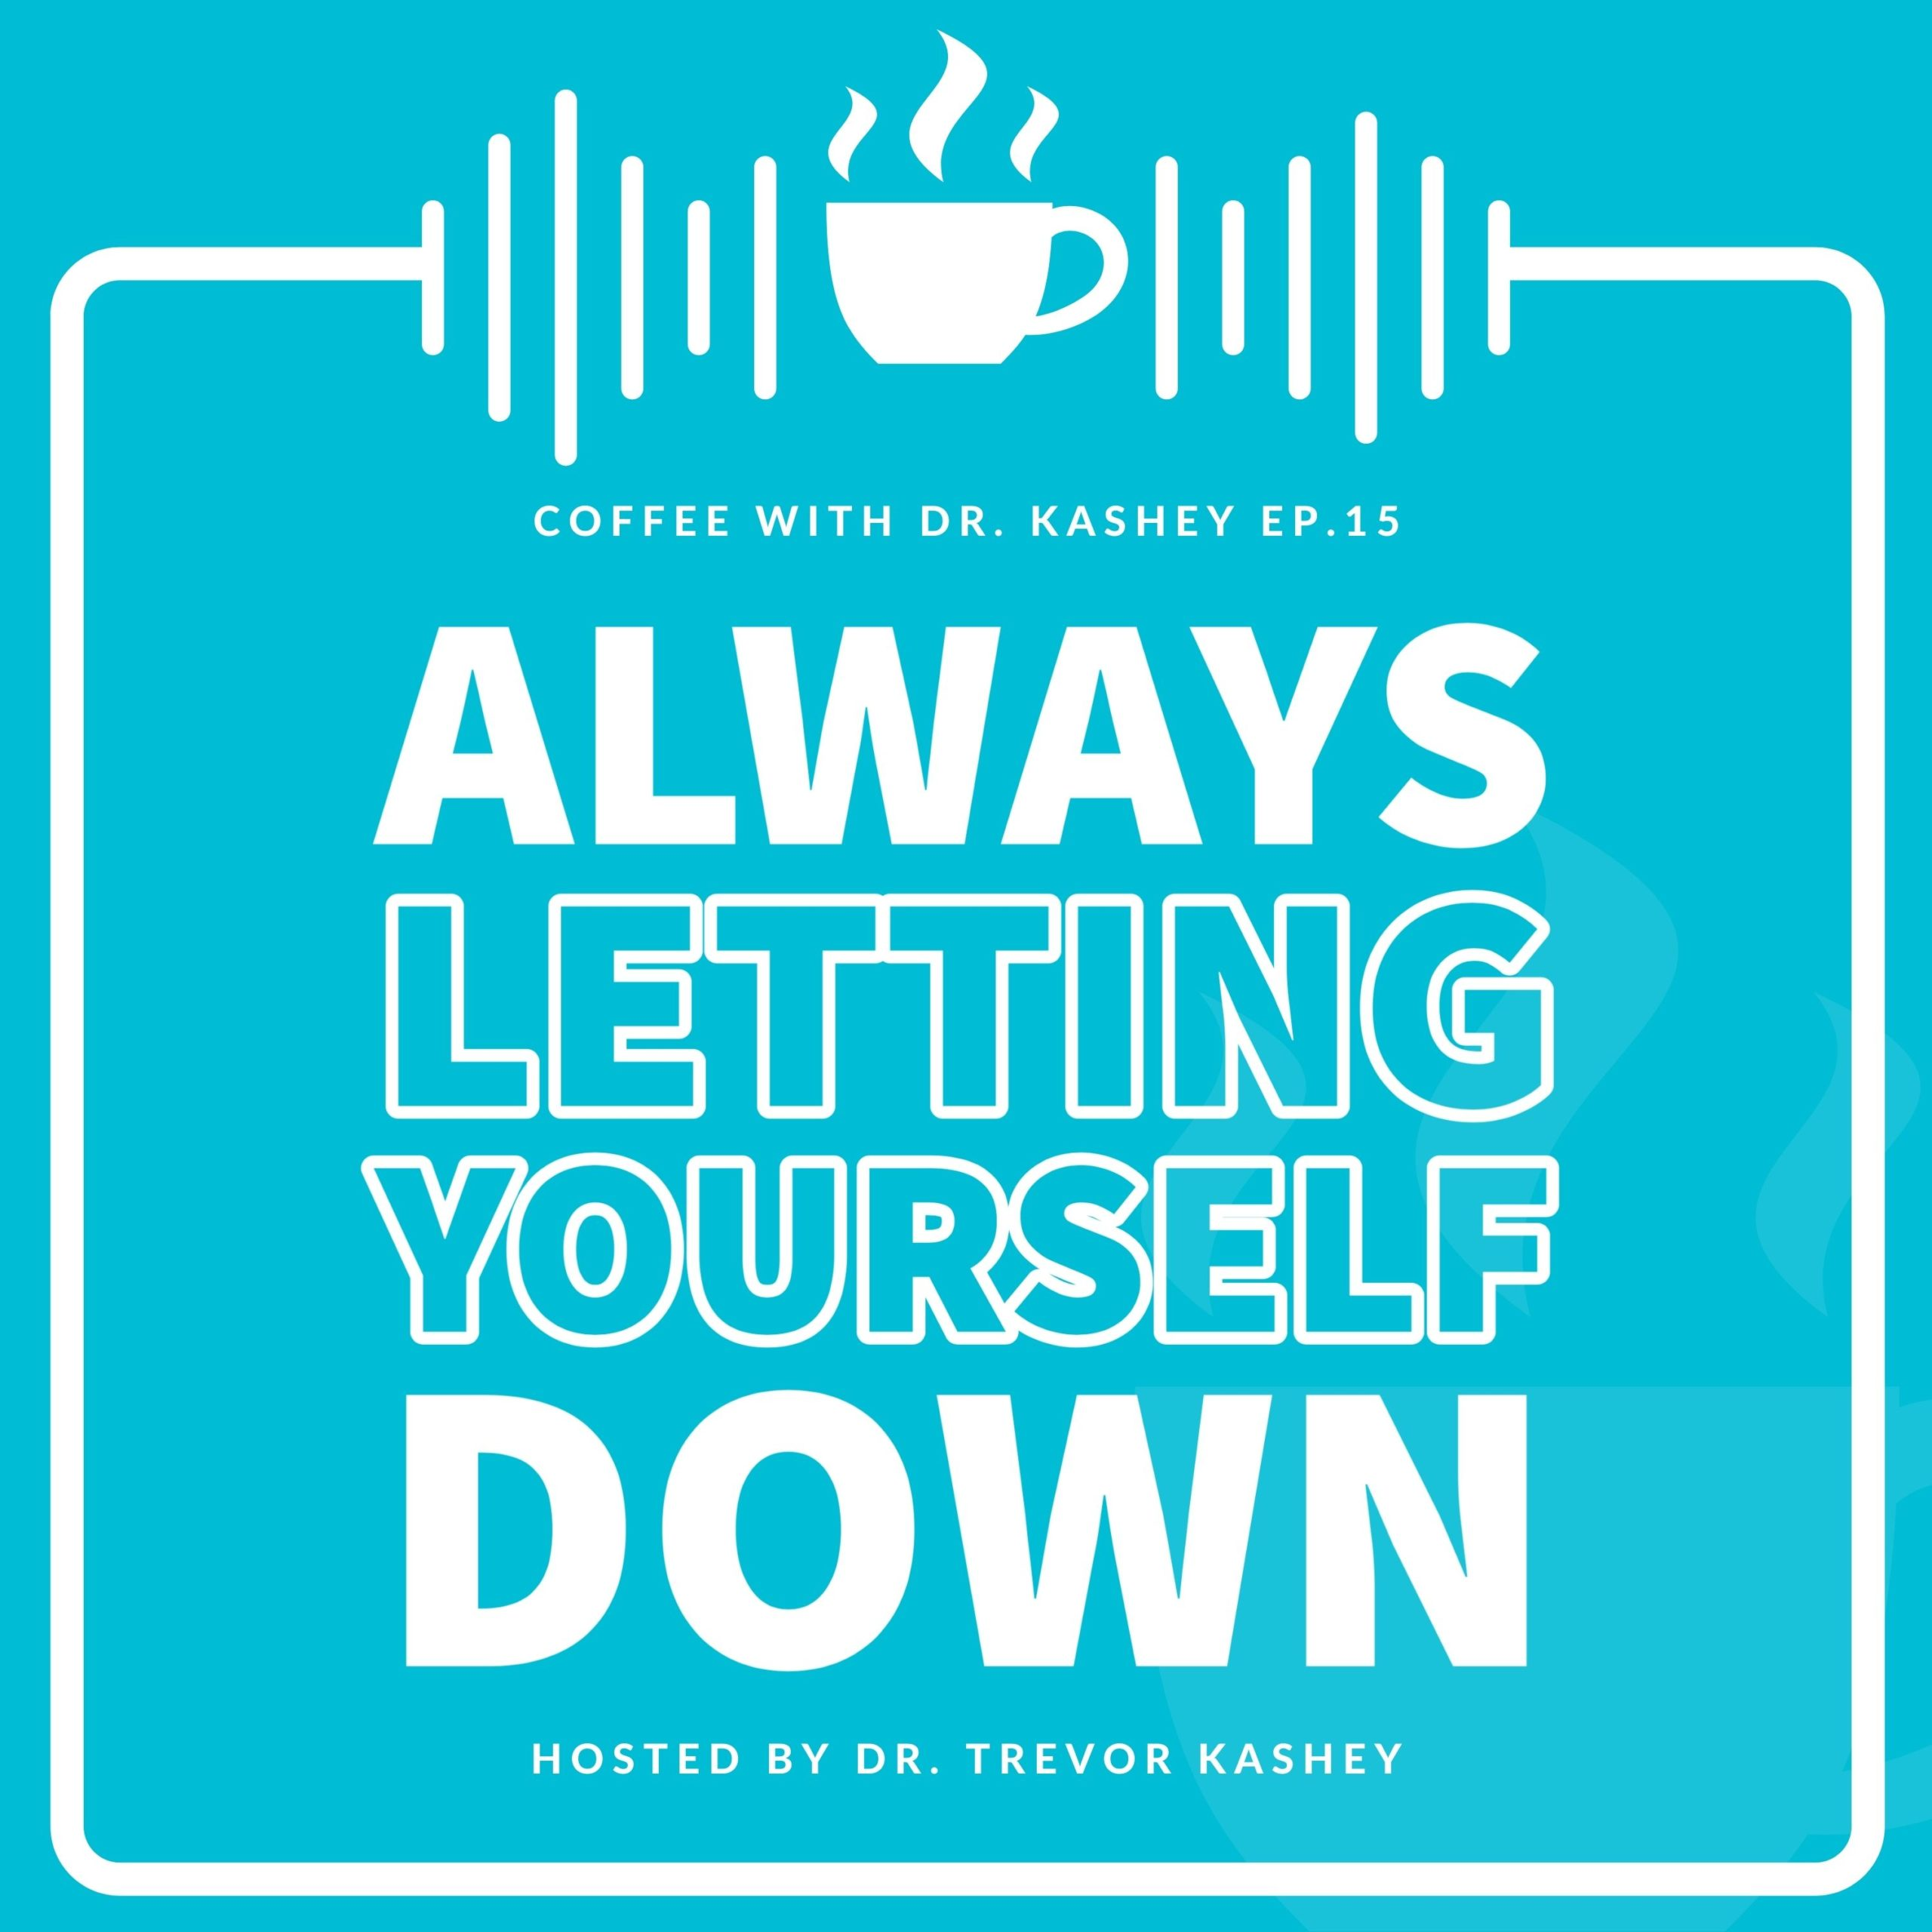 letting yourself down